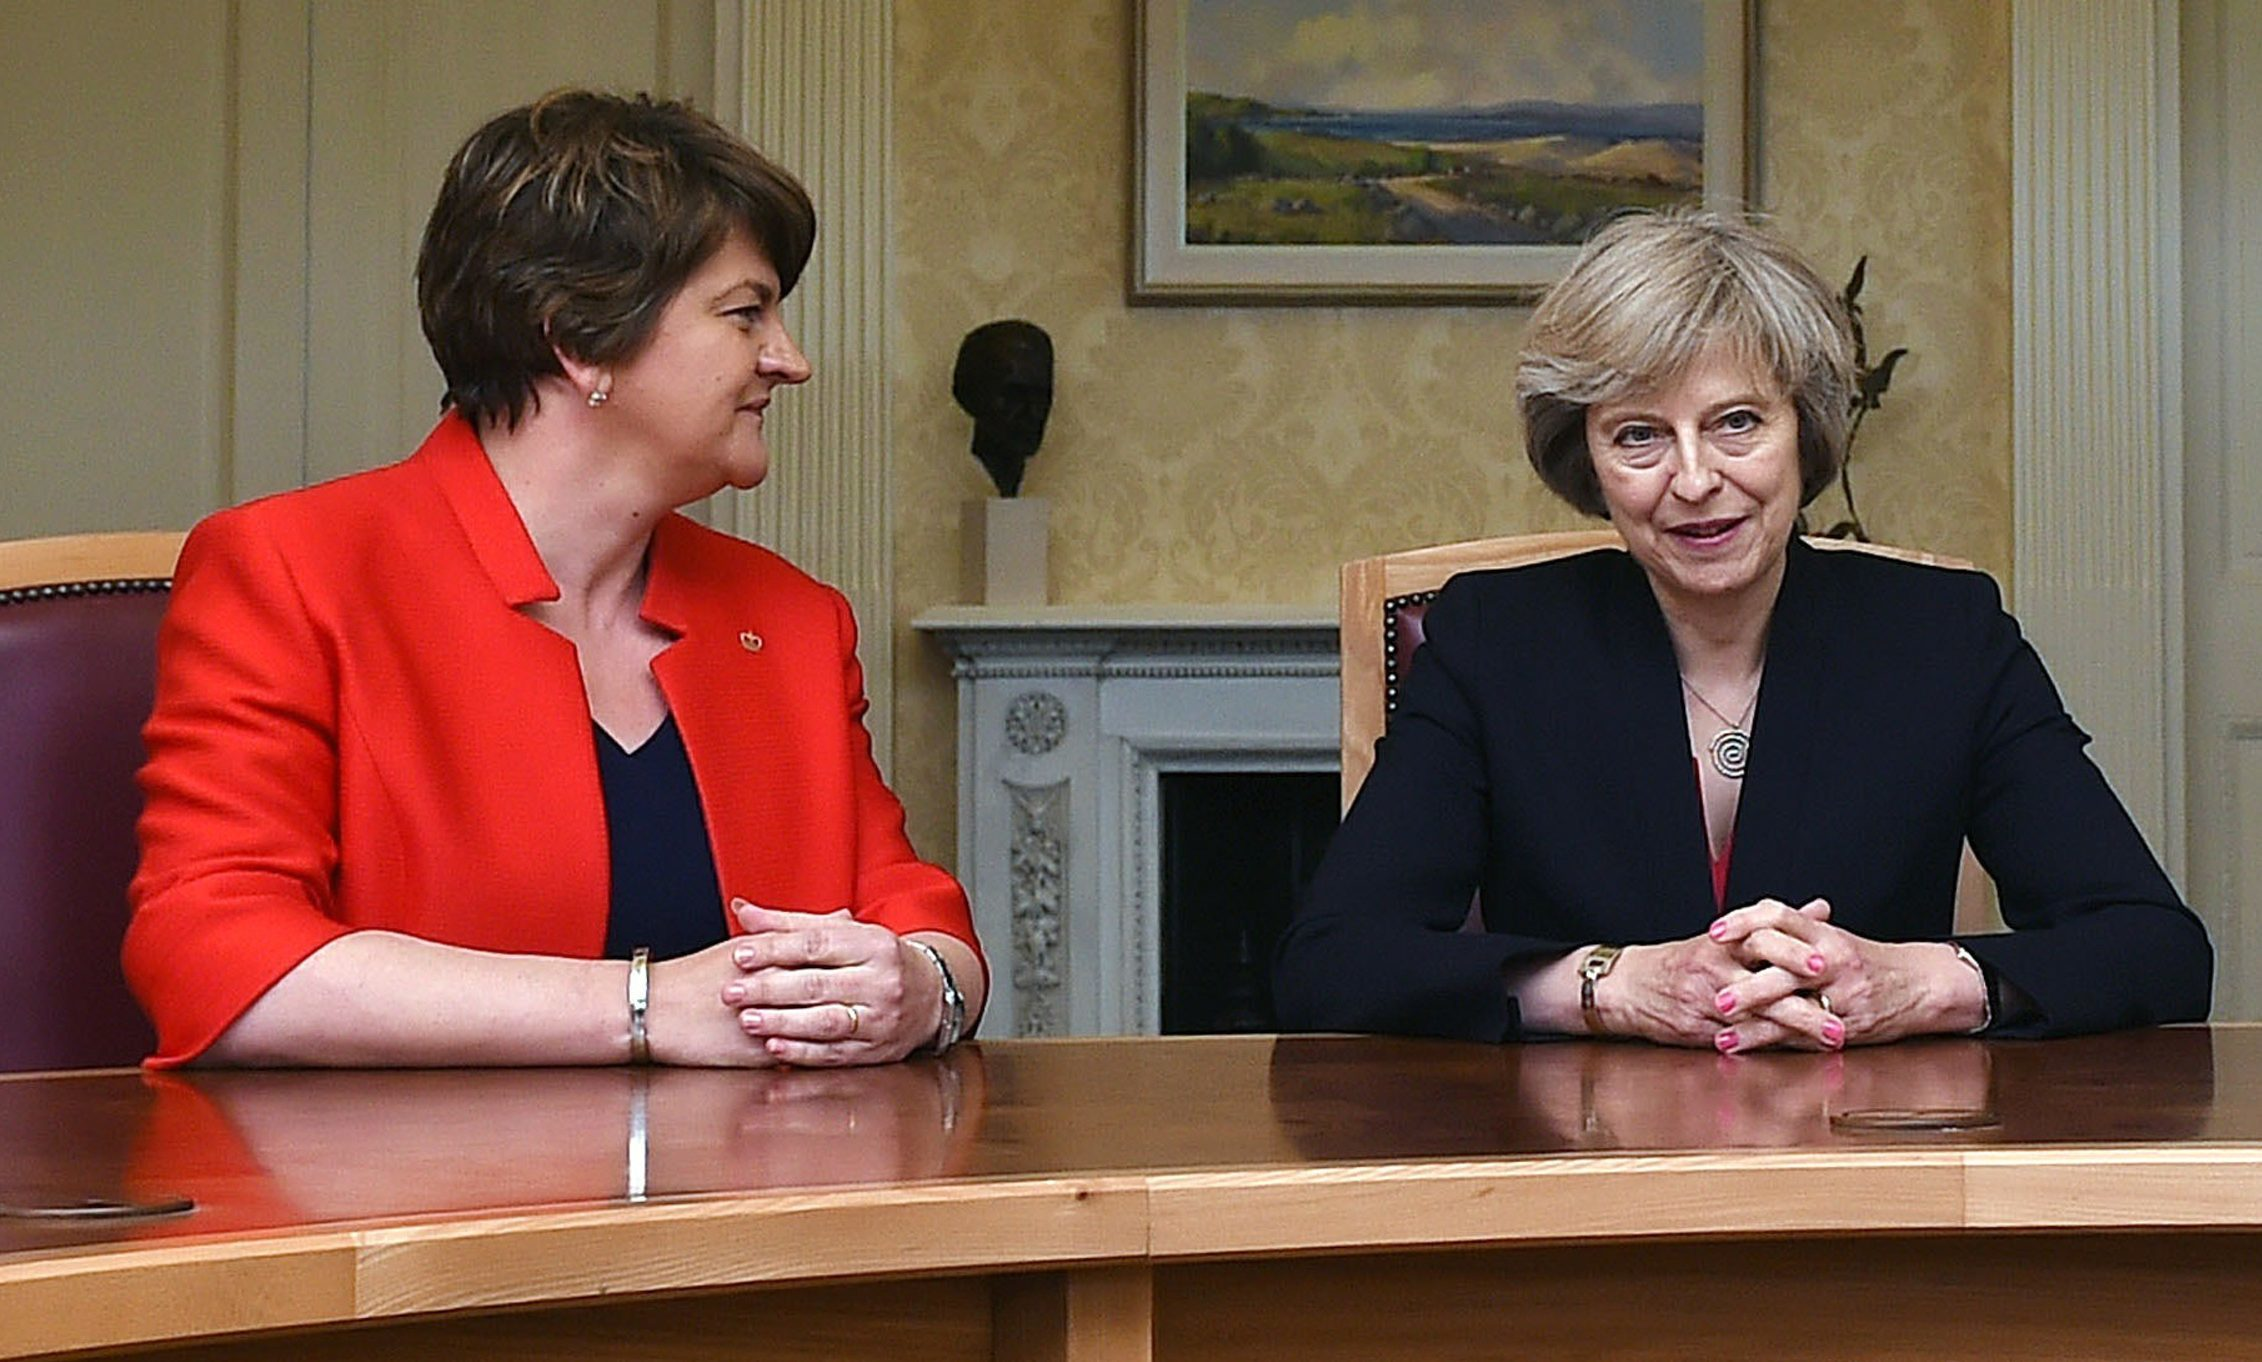 Arlene Foster (left), leader of the Democratic Unionist Party, with Prime Minister Theresa May